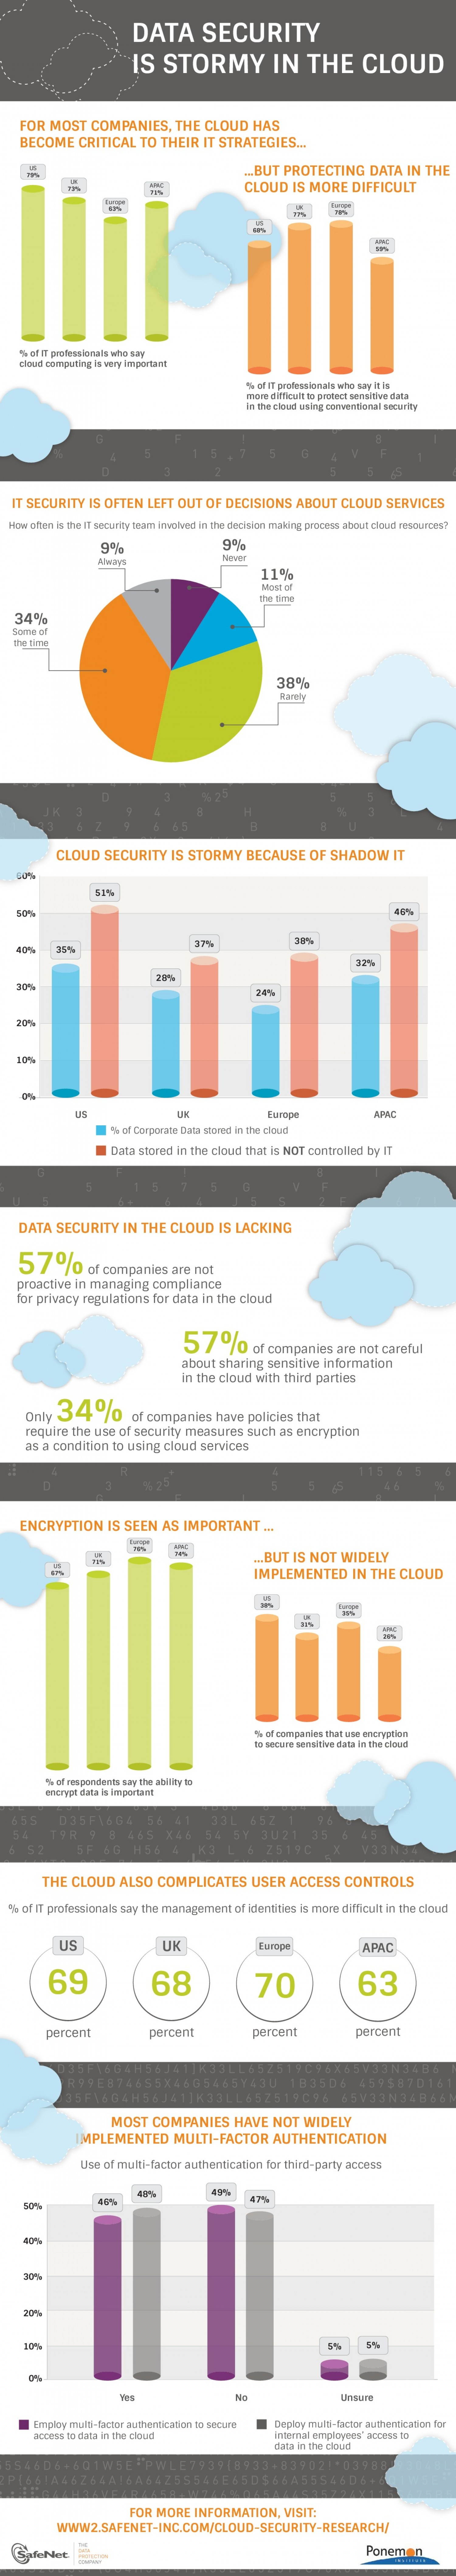 Cloud Data Security and Governance Infographic Clouds